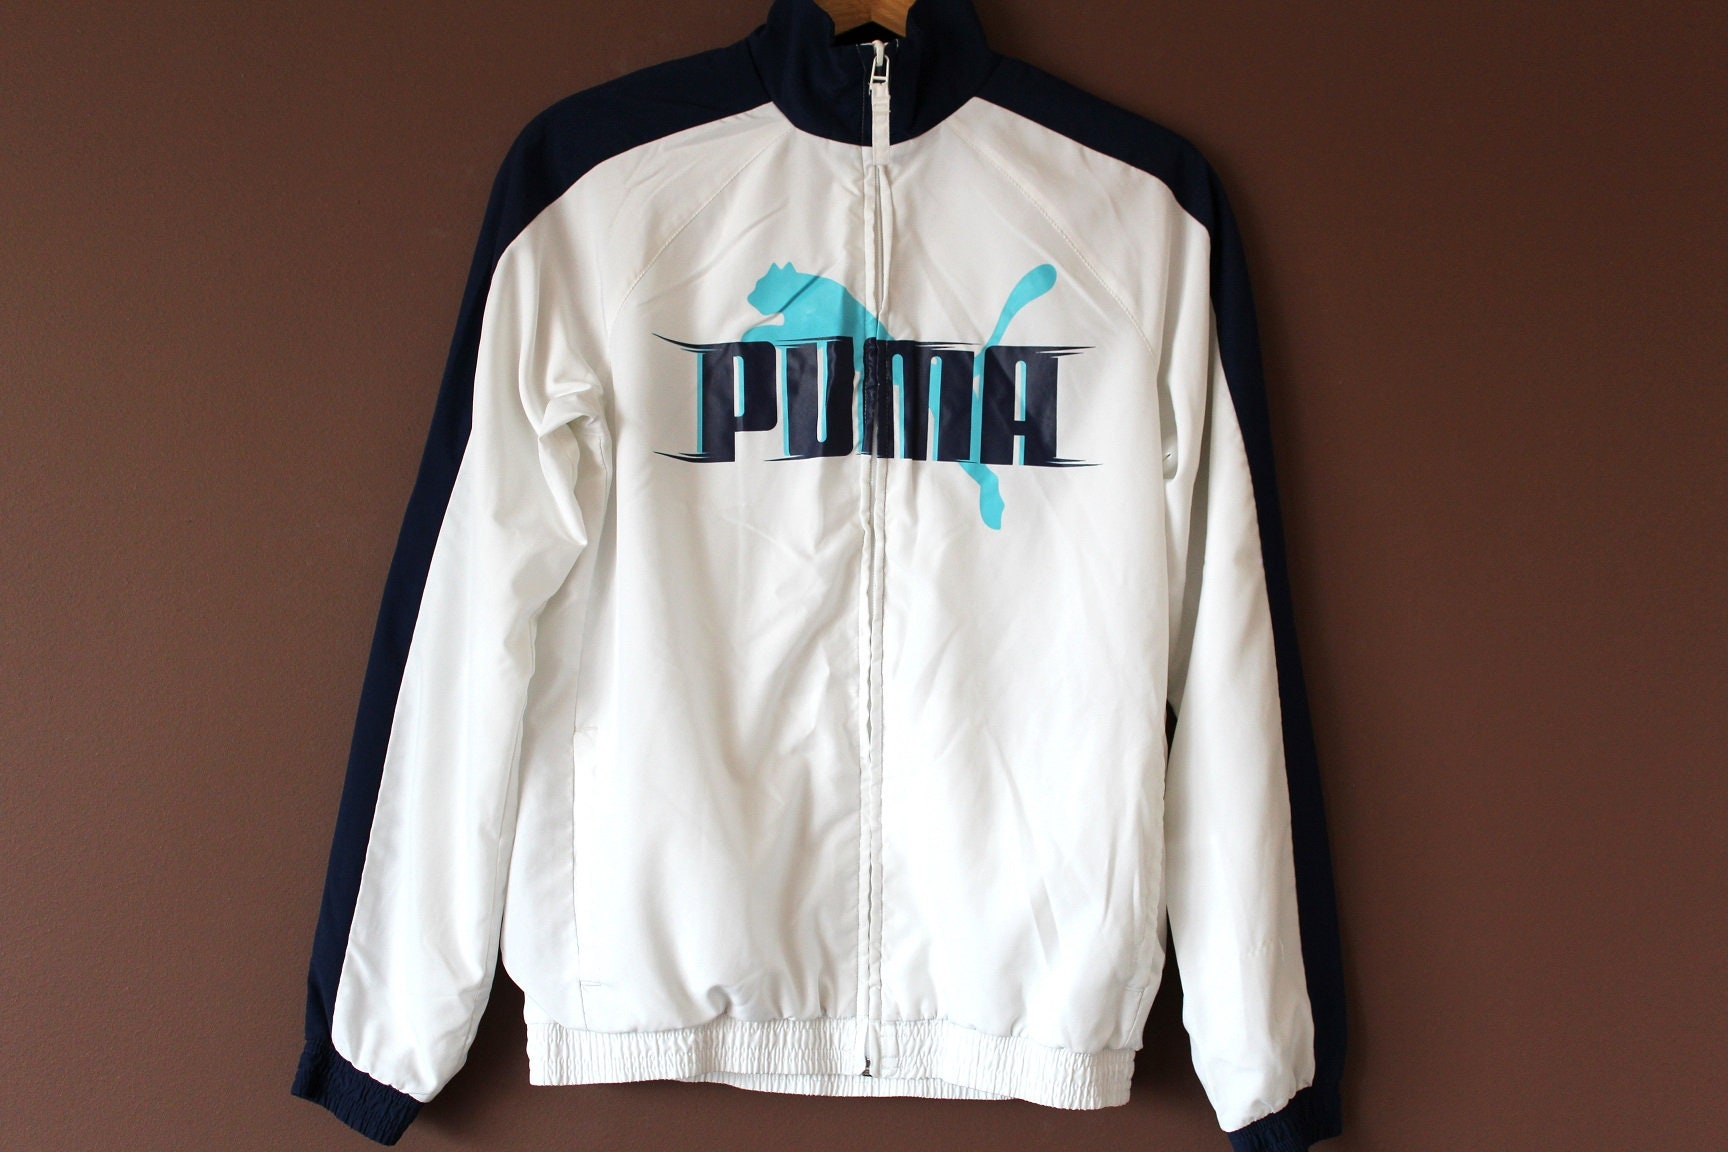 ac095704f456 90 s PUMA Windbreaker Vintage Puma Jacket White Blue